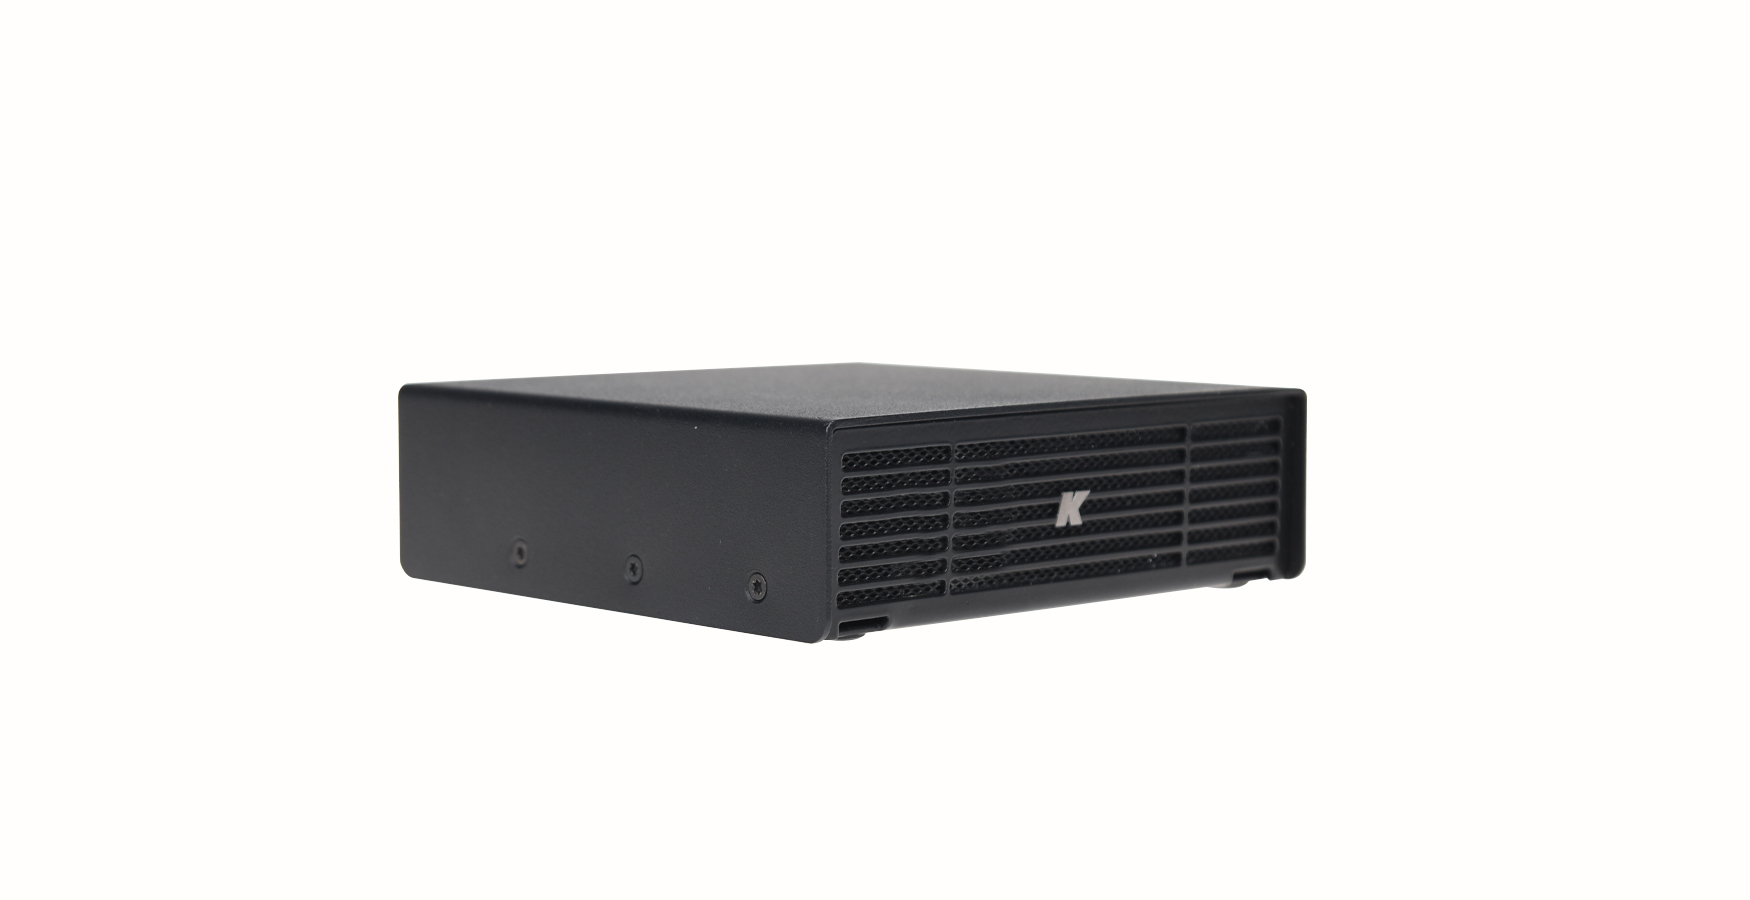 Kommander-KA02: Stainless steel 200W in 2U rack amplifier and